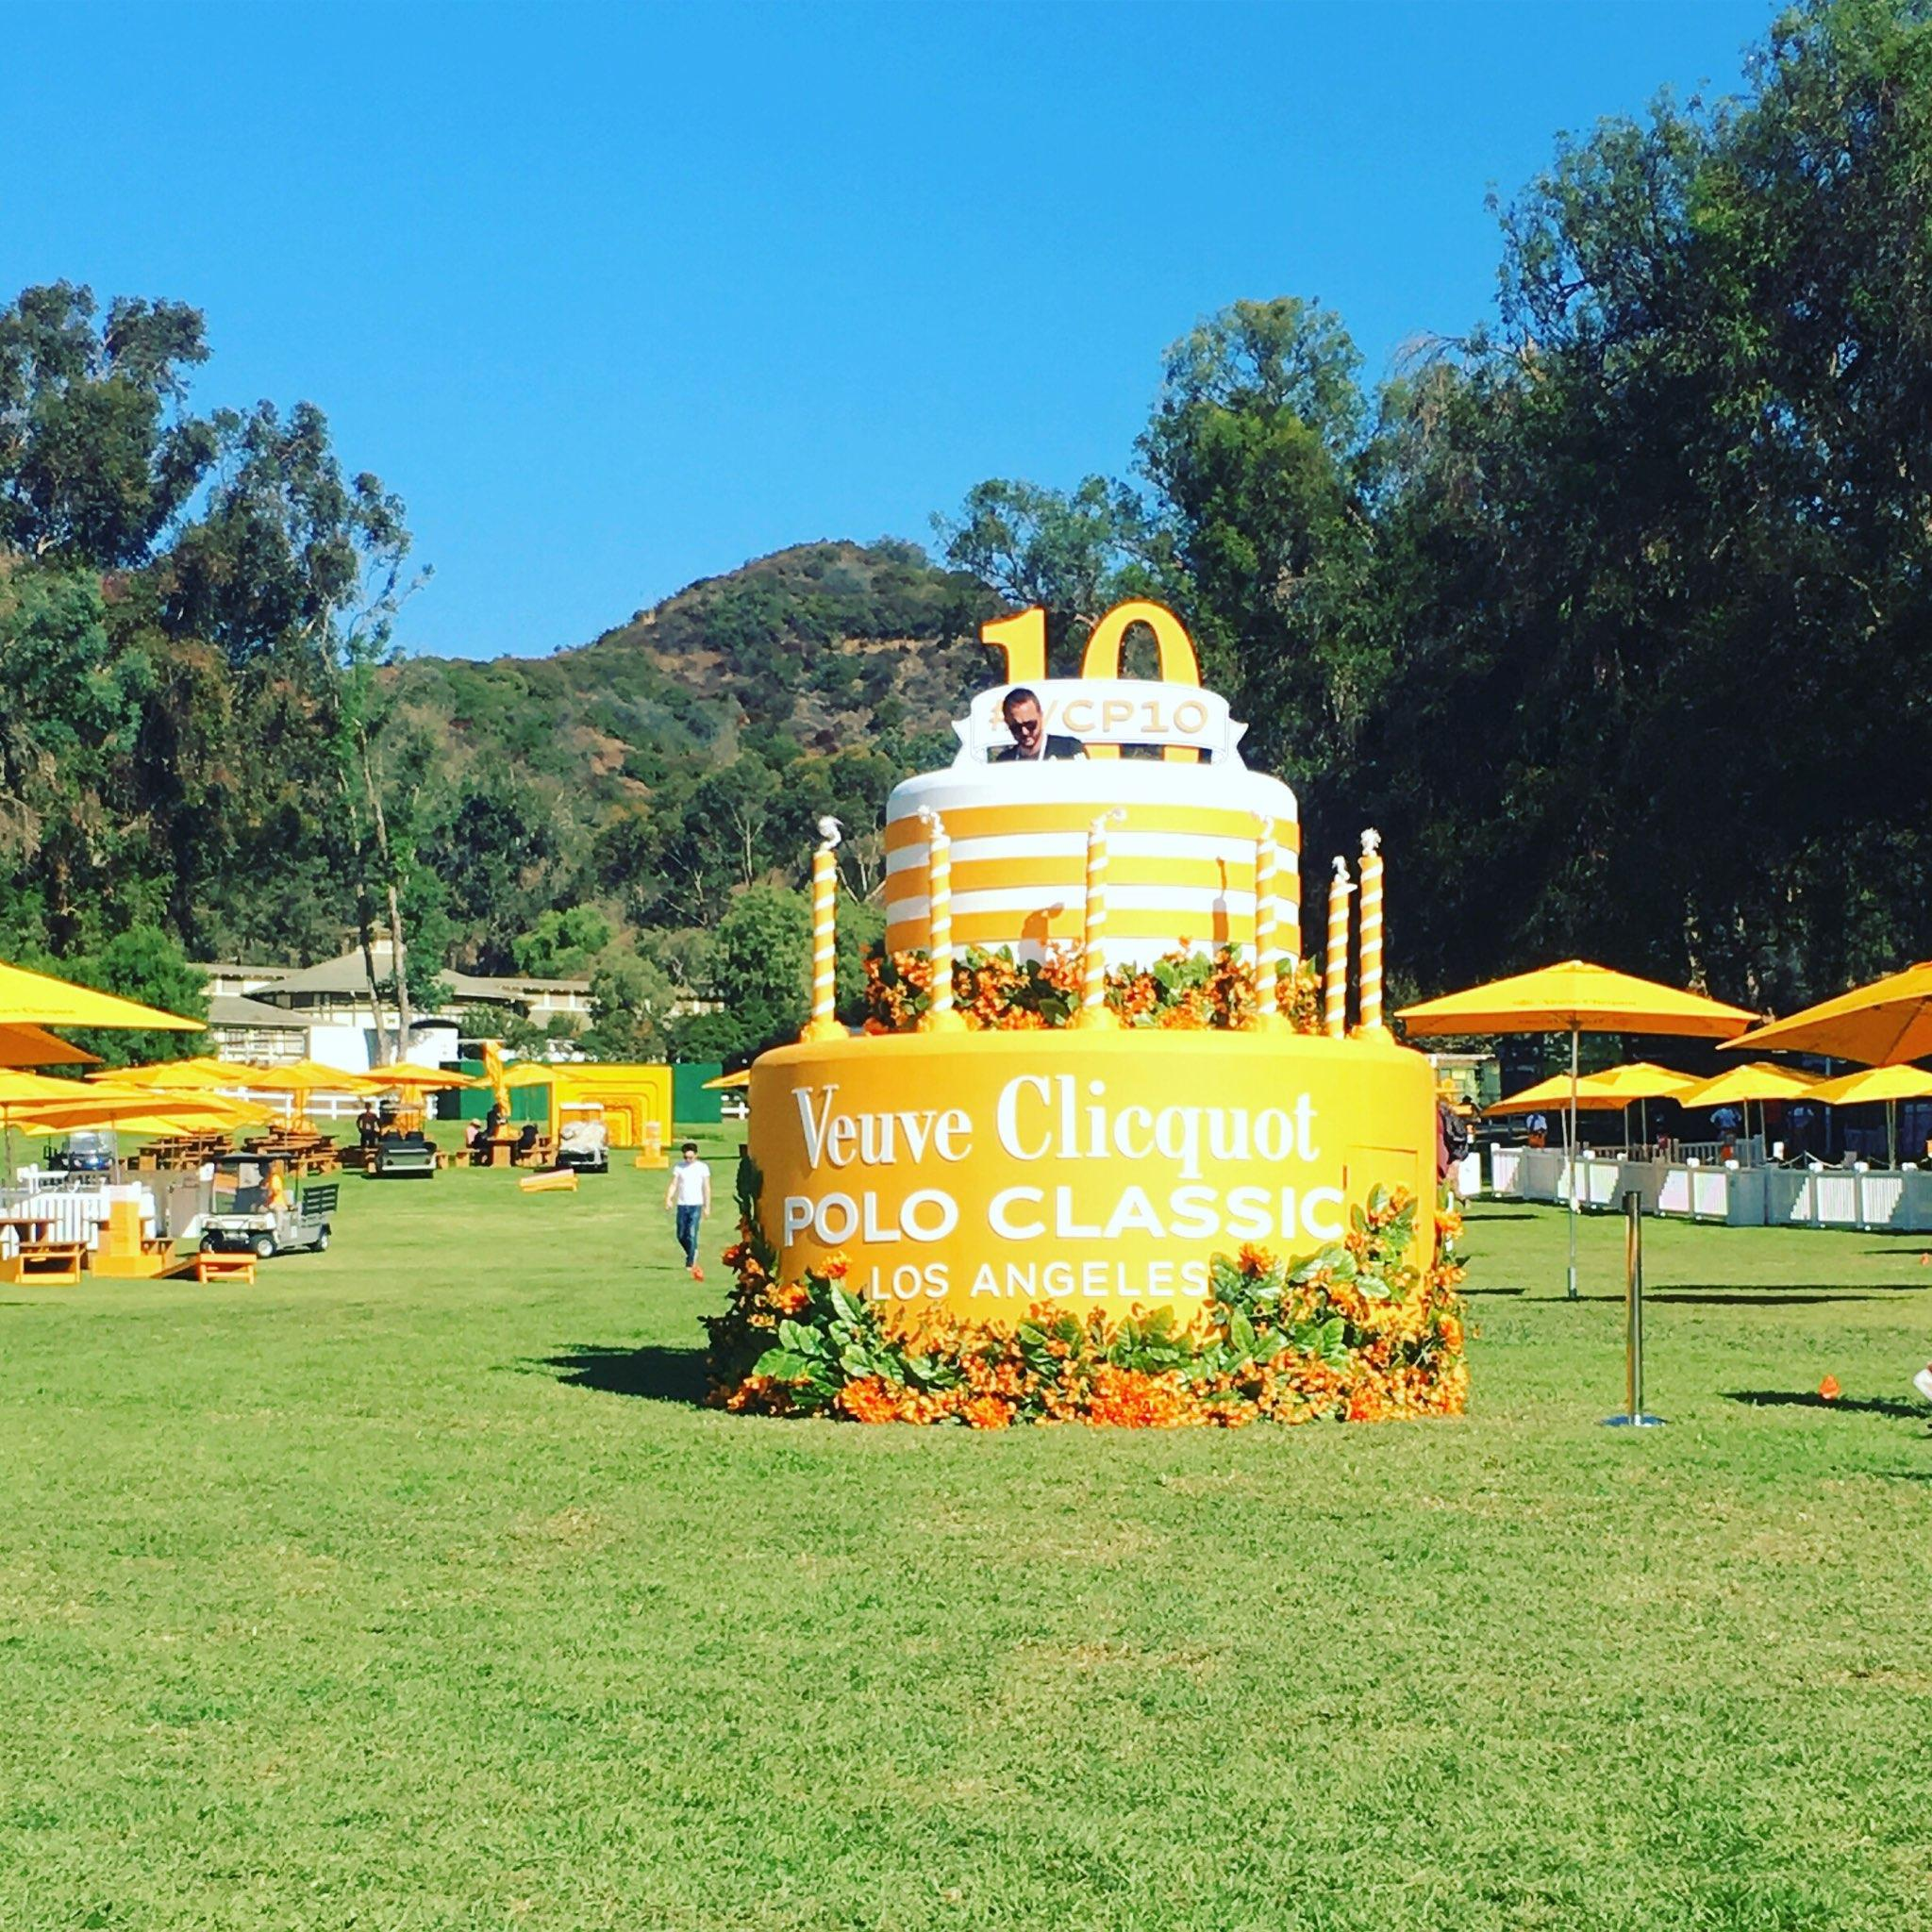 Veuve Clicquot Polo Tournament